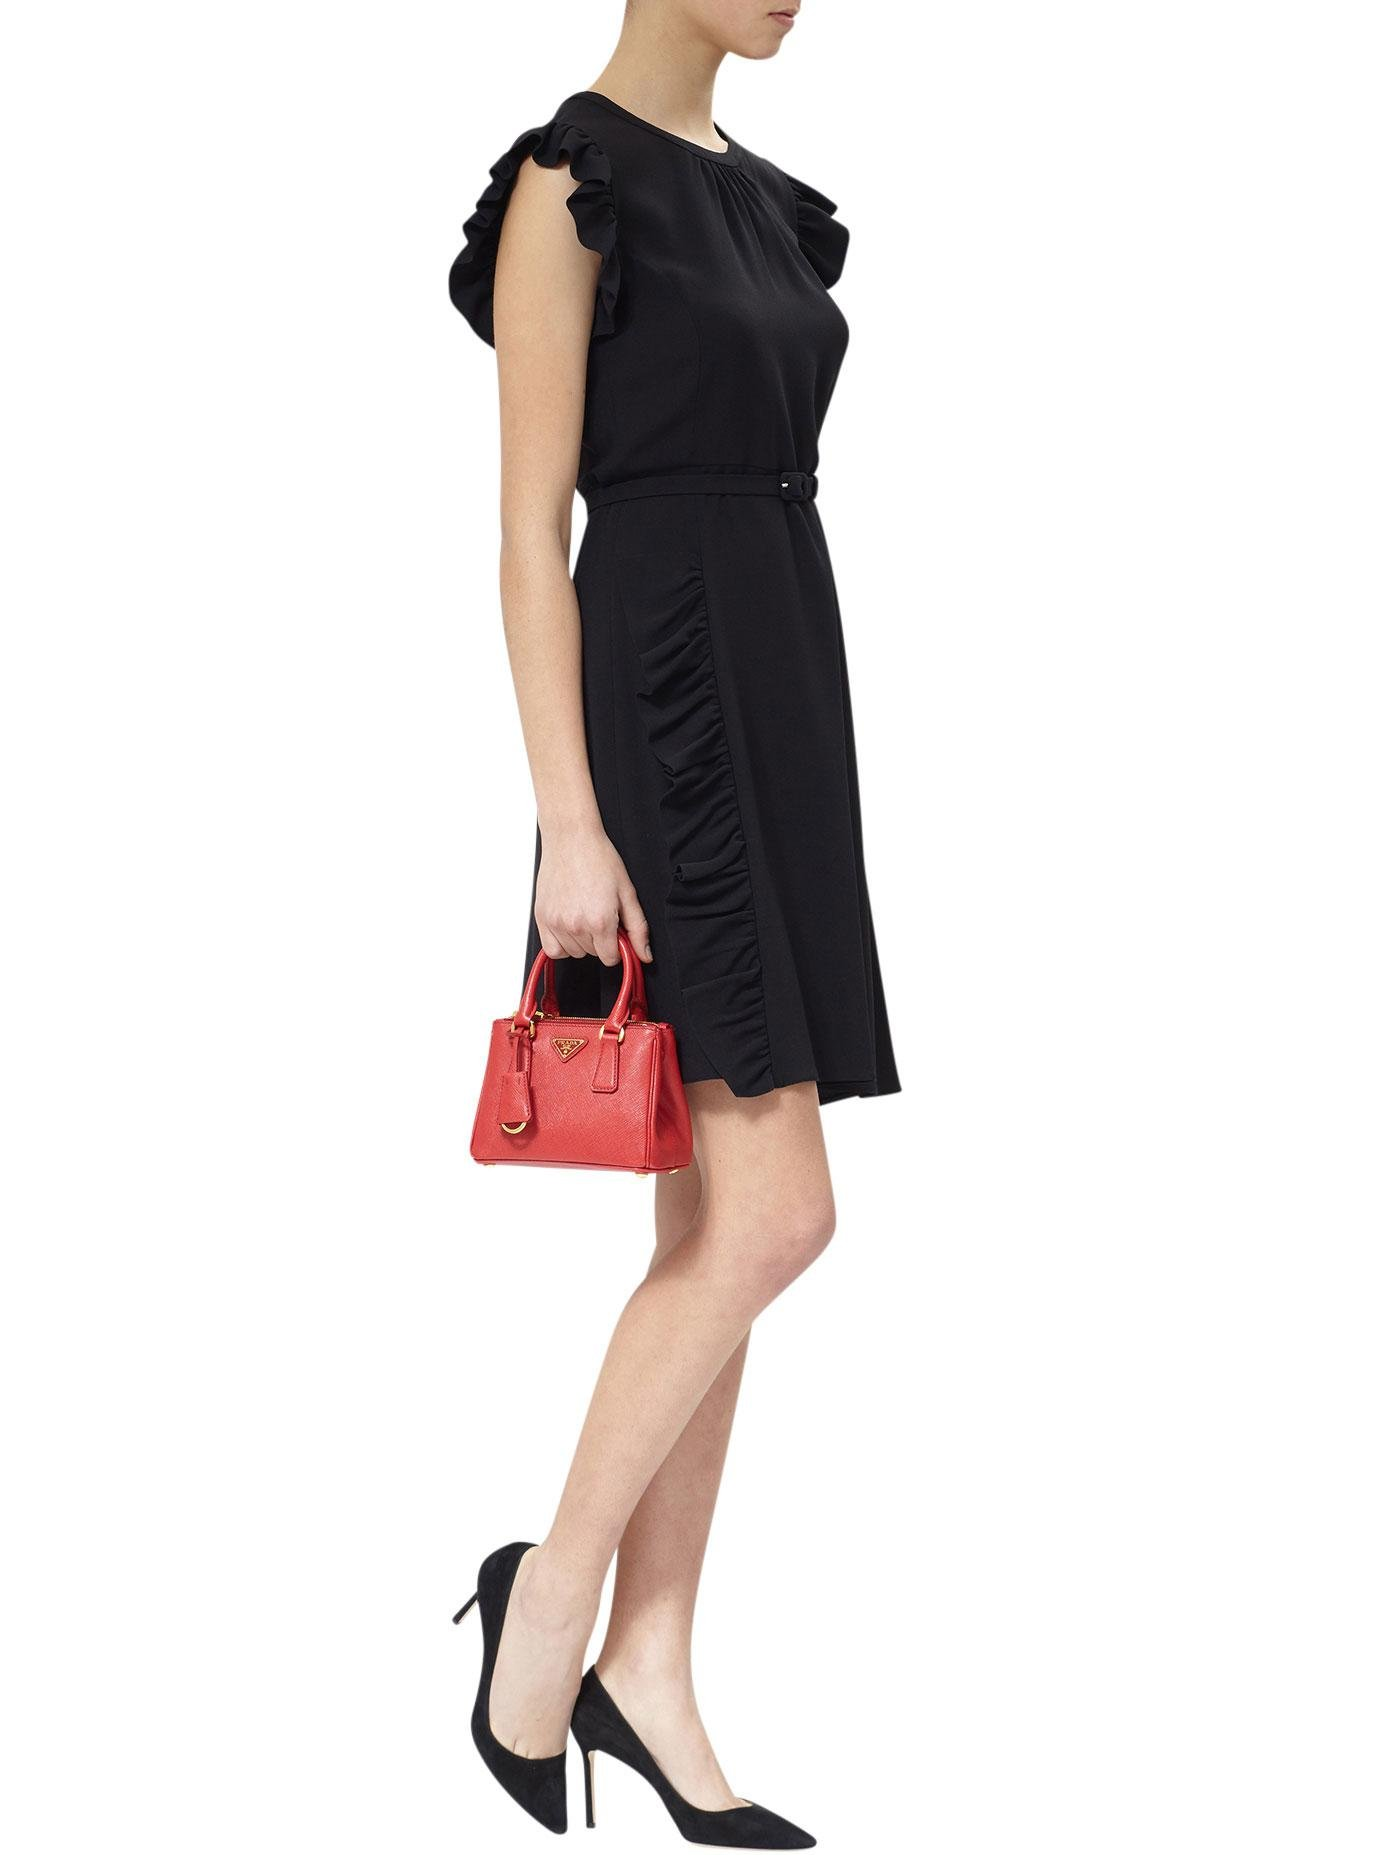 307903bc1b38 ... coupon code lyst prada galleria mini saffiano leather bag in red 41f1d  269be ...